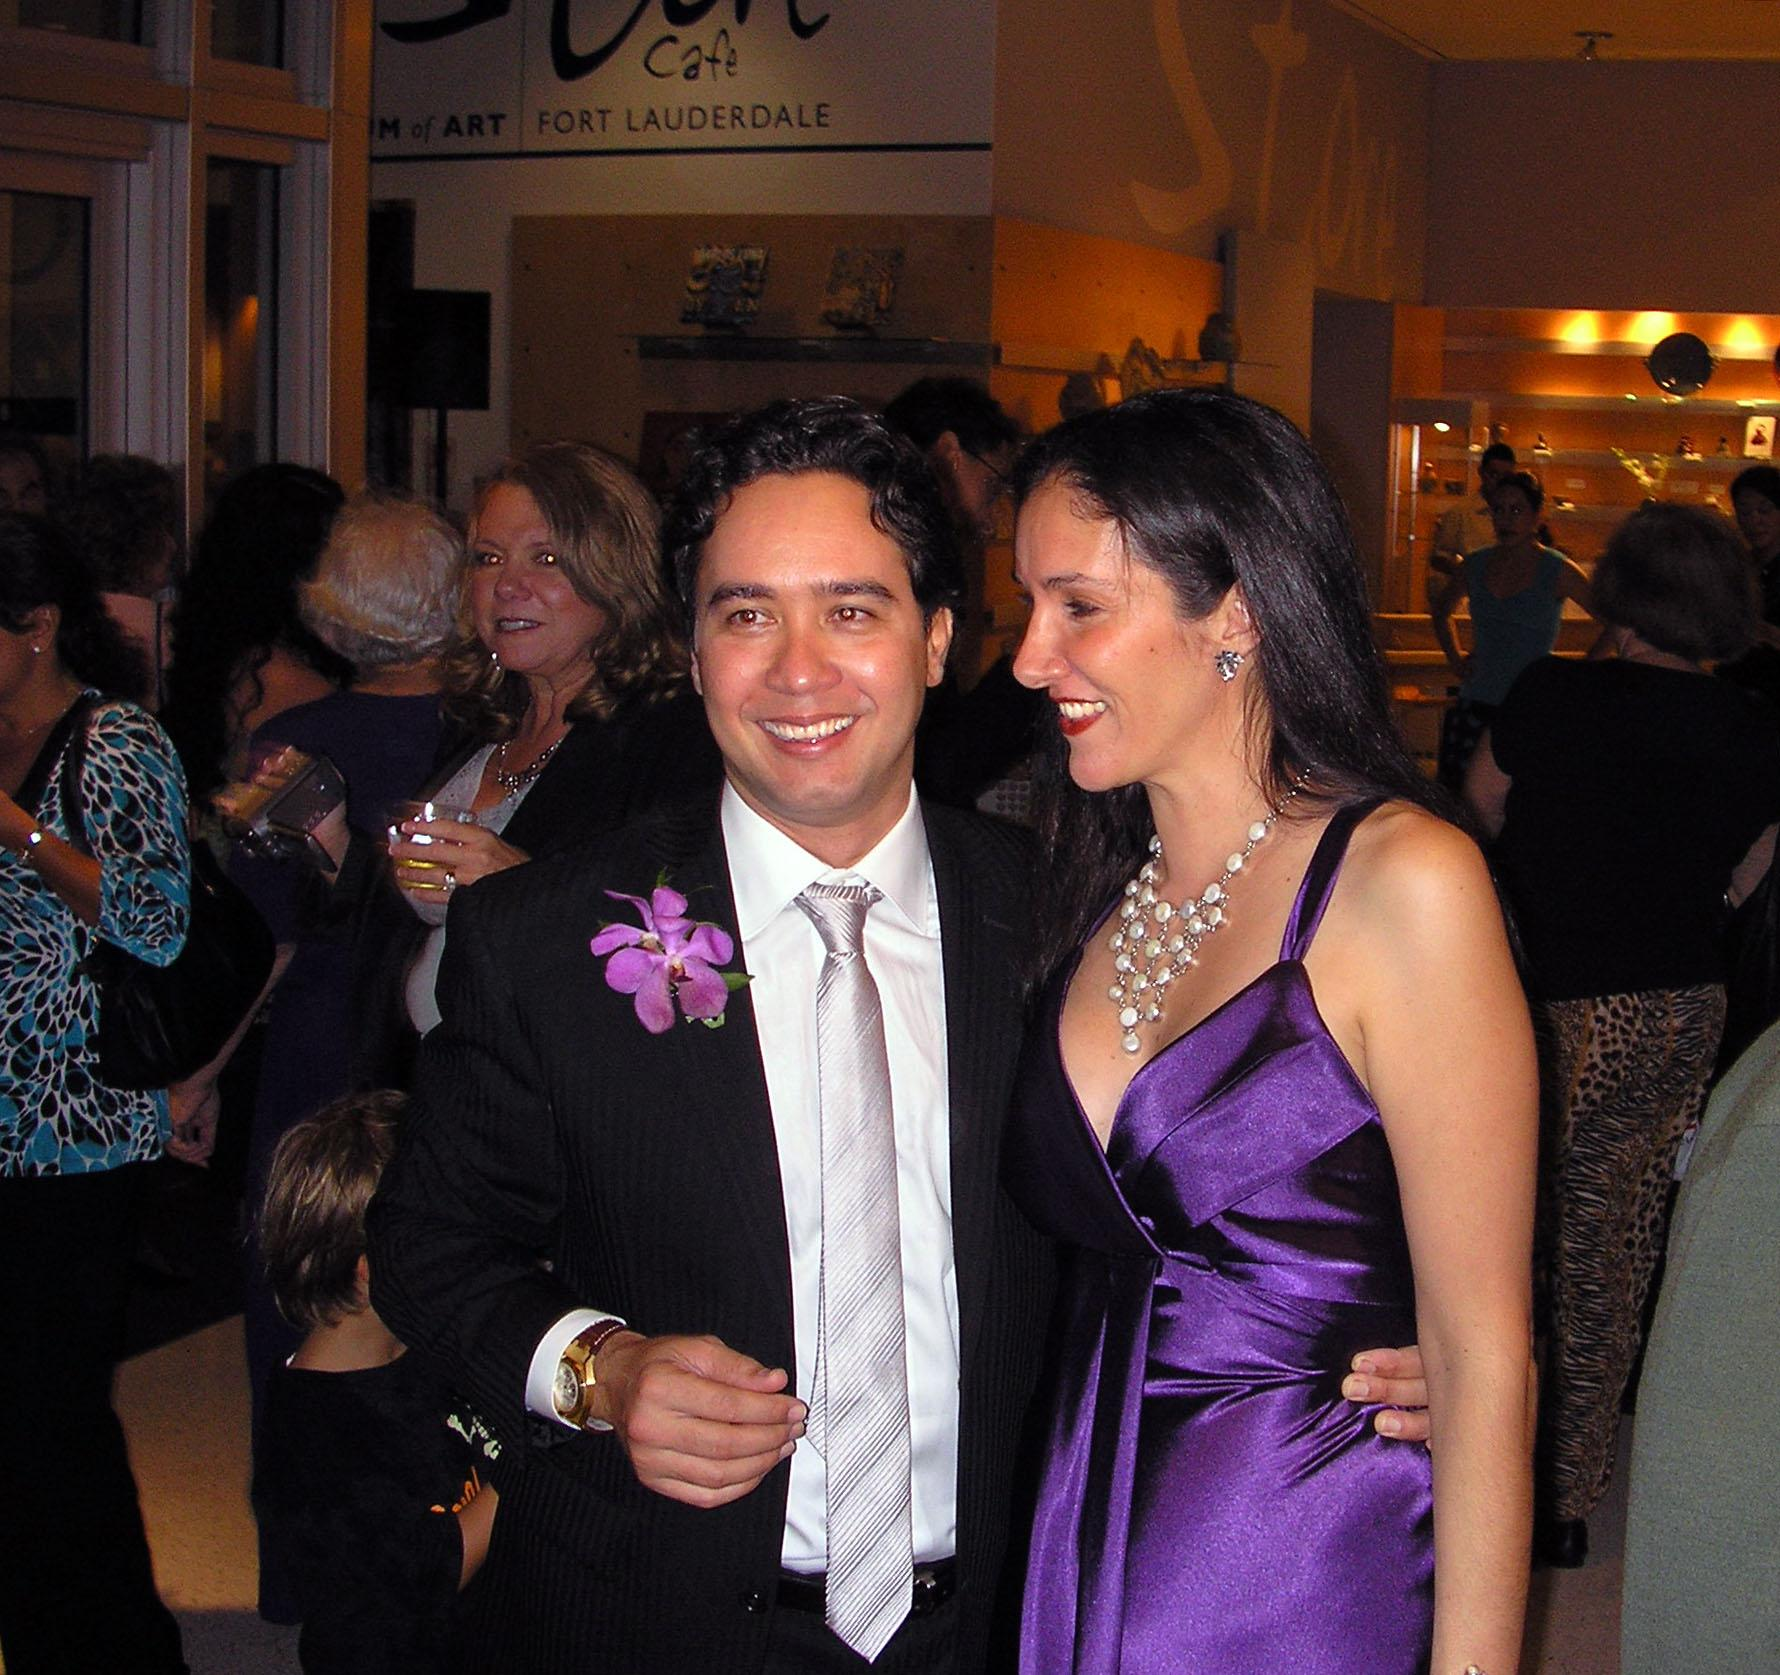 Carlos and Claudia Luna, opening night at the Museum of Art | Fort Lauderdale, 2008